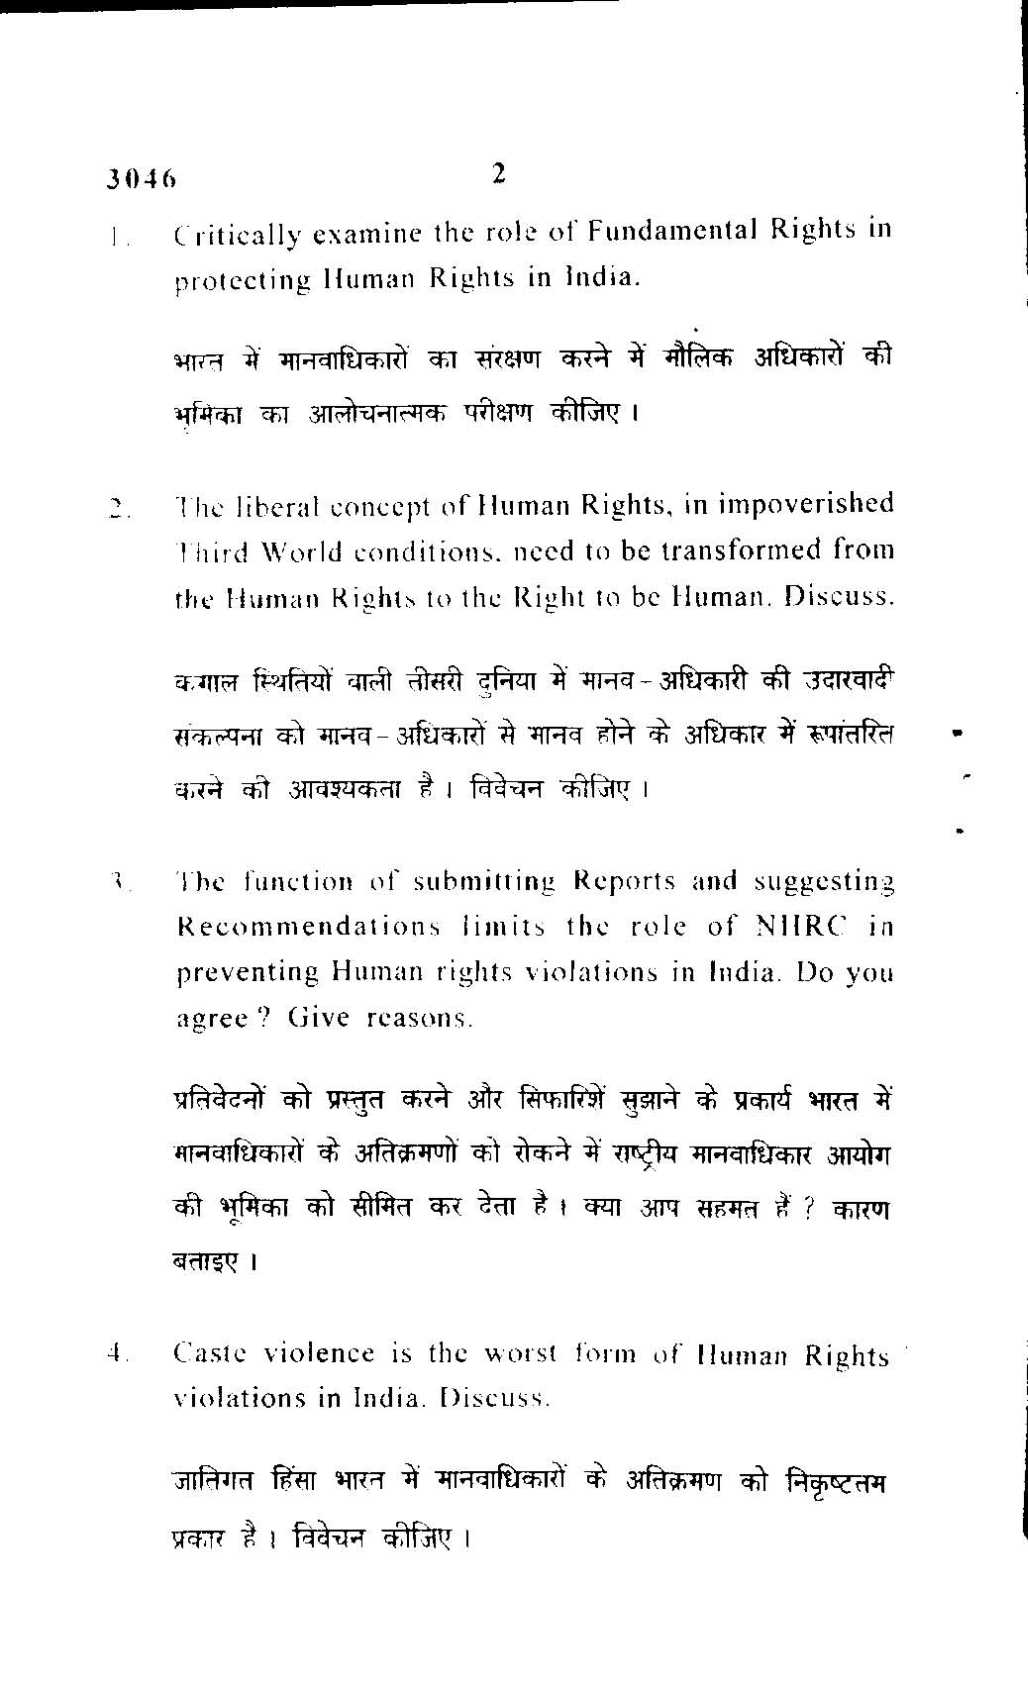 009 Previous Question Papers For Ma Political Science Delhi University Essay Topics Stirring Party Questions Argumentative Geography Paper Full